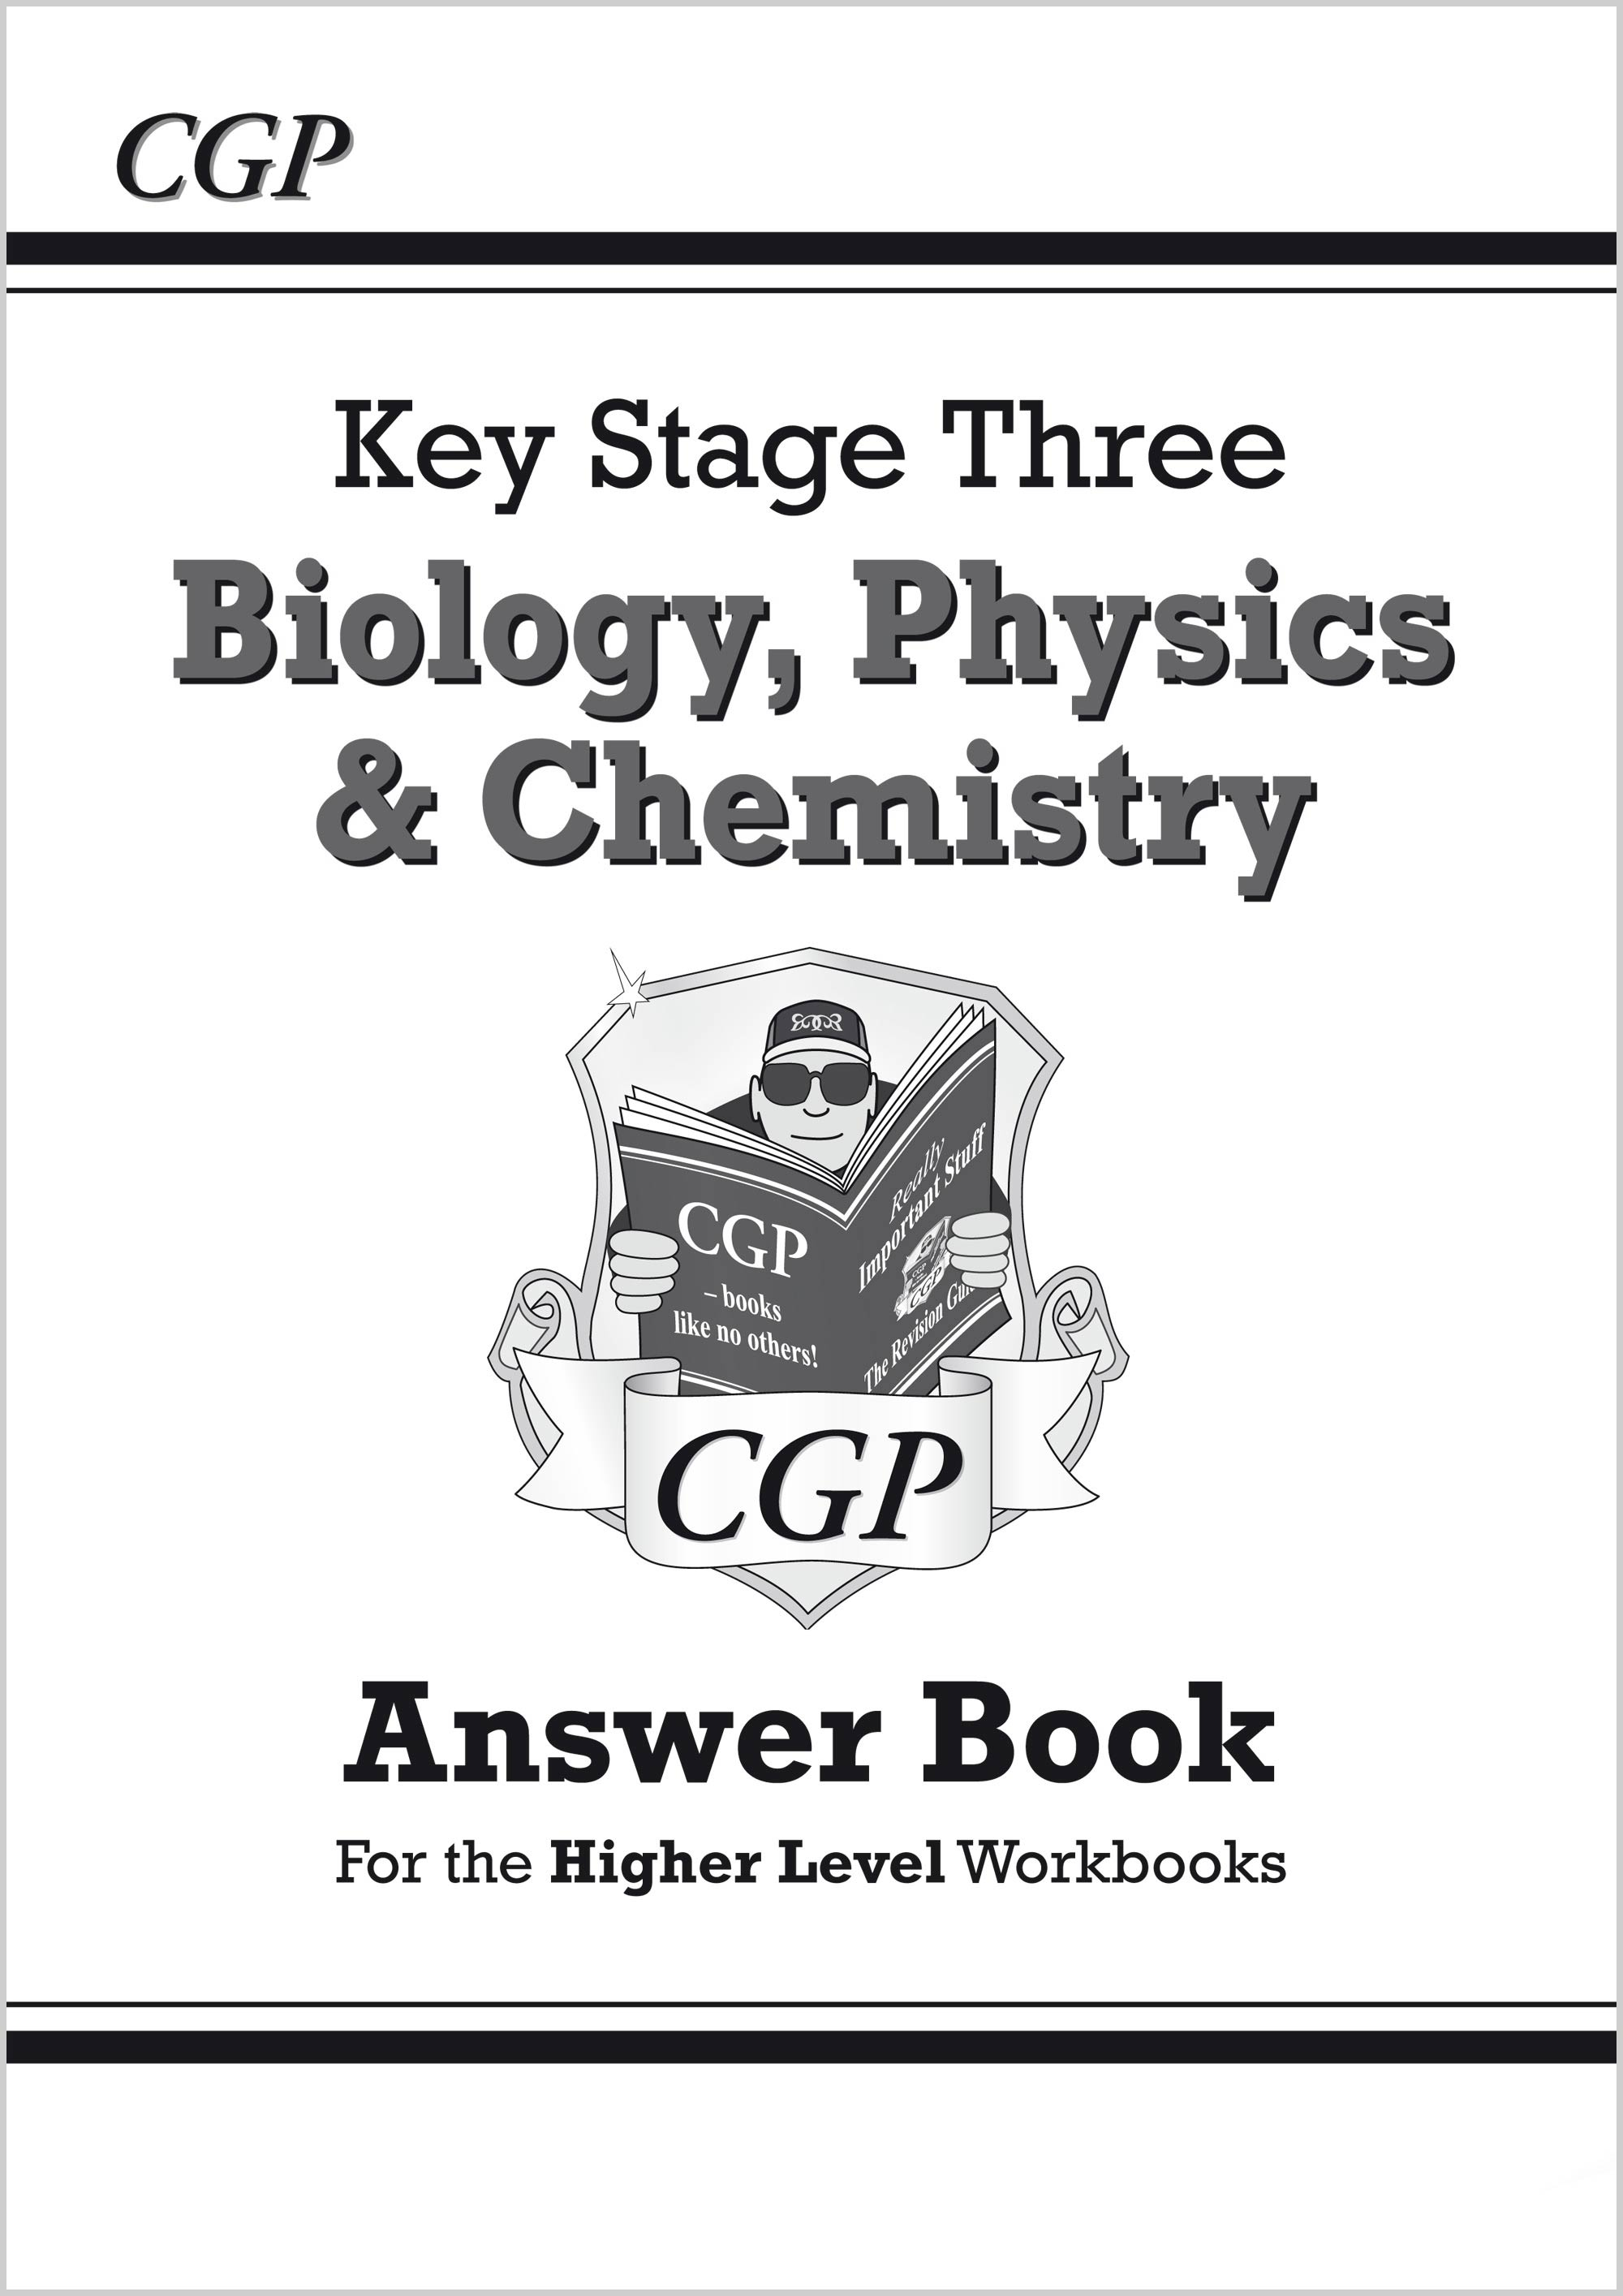 SHA32 - KS3 Science Answers for Workbooks (Bio/Chem/Phys) - Higher